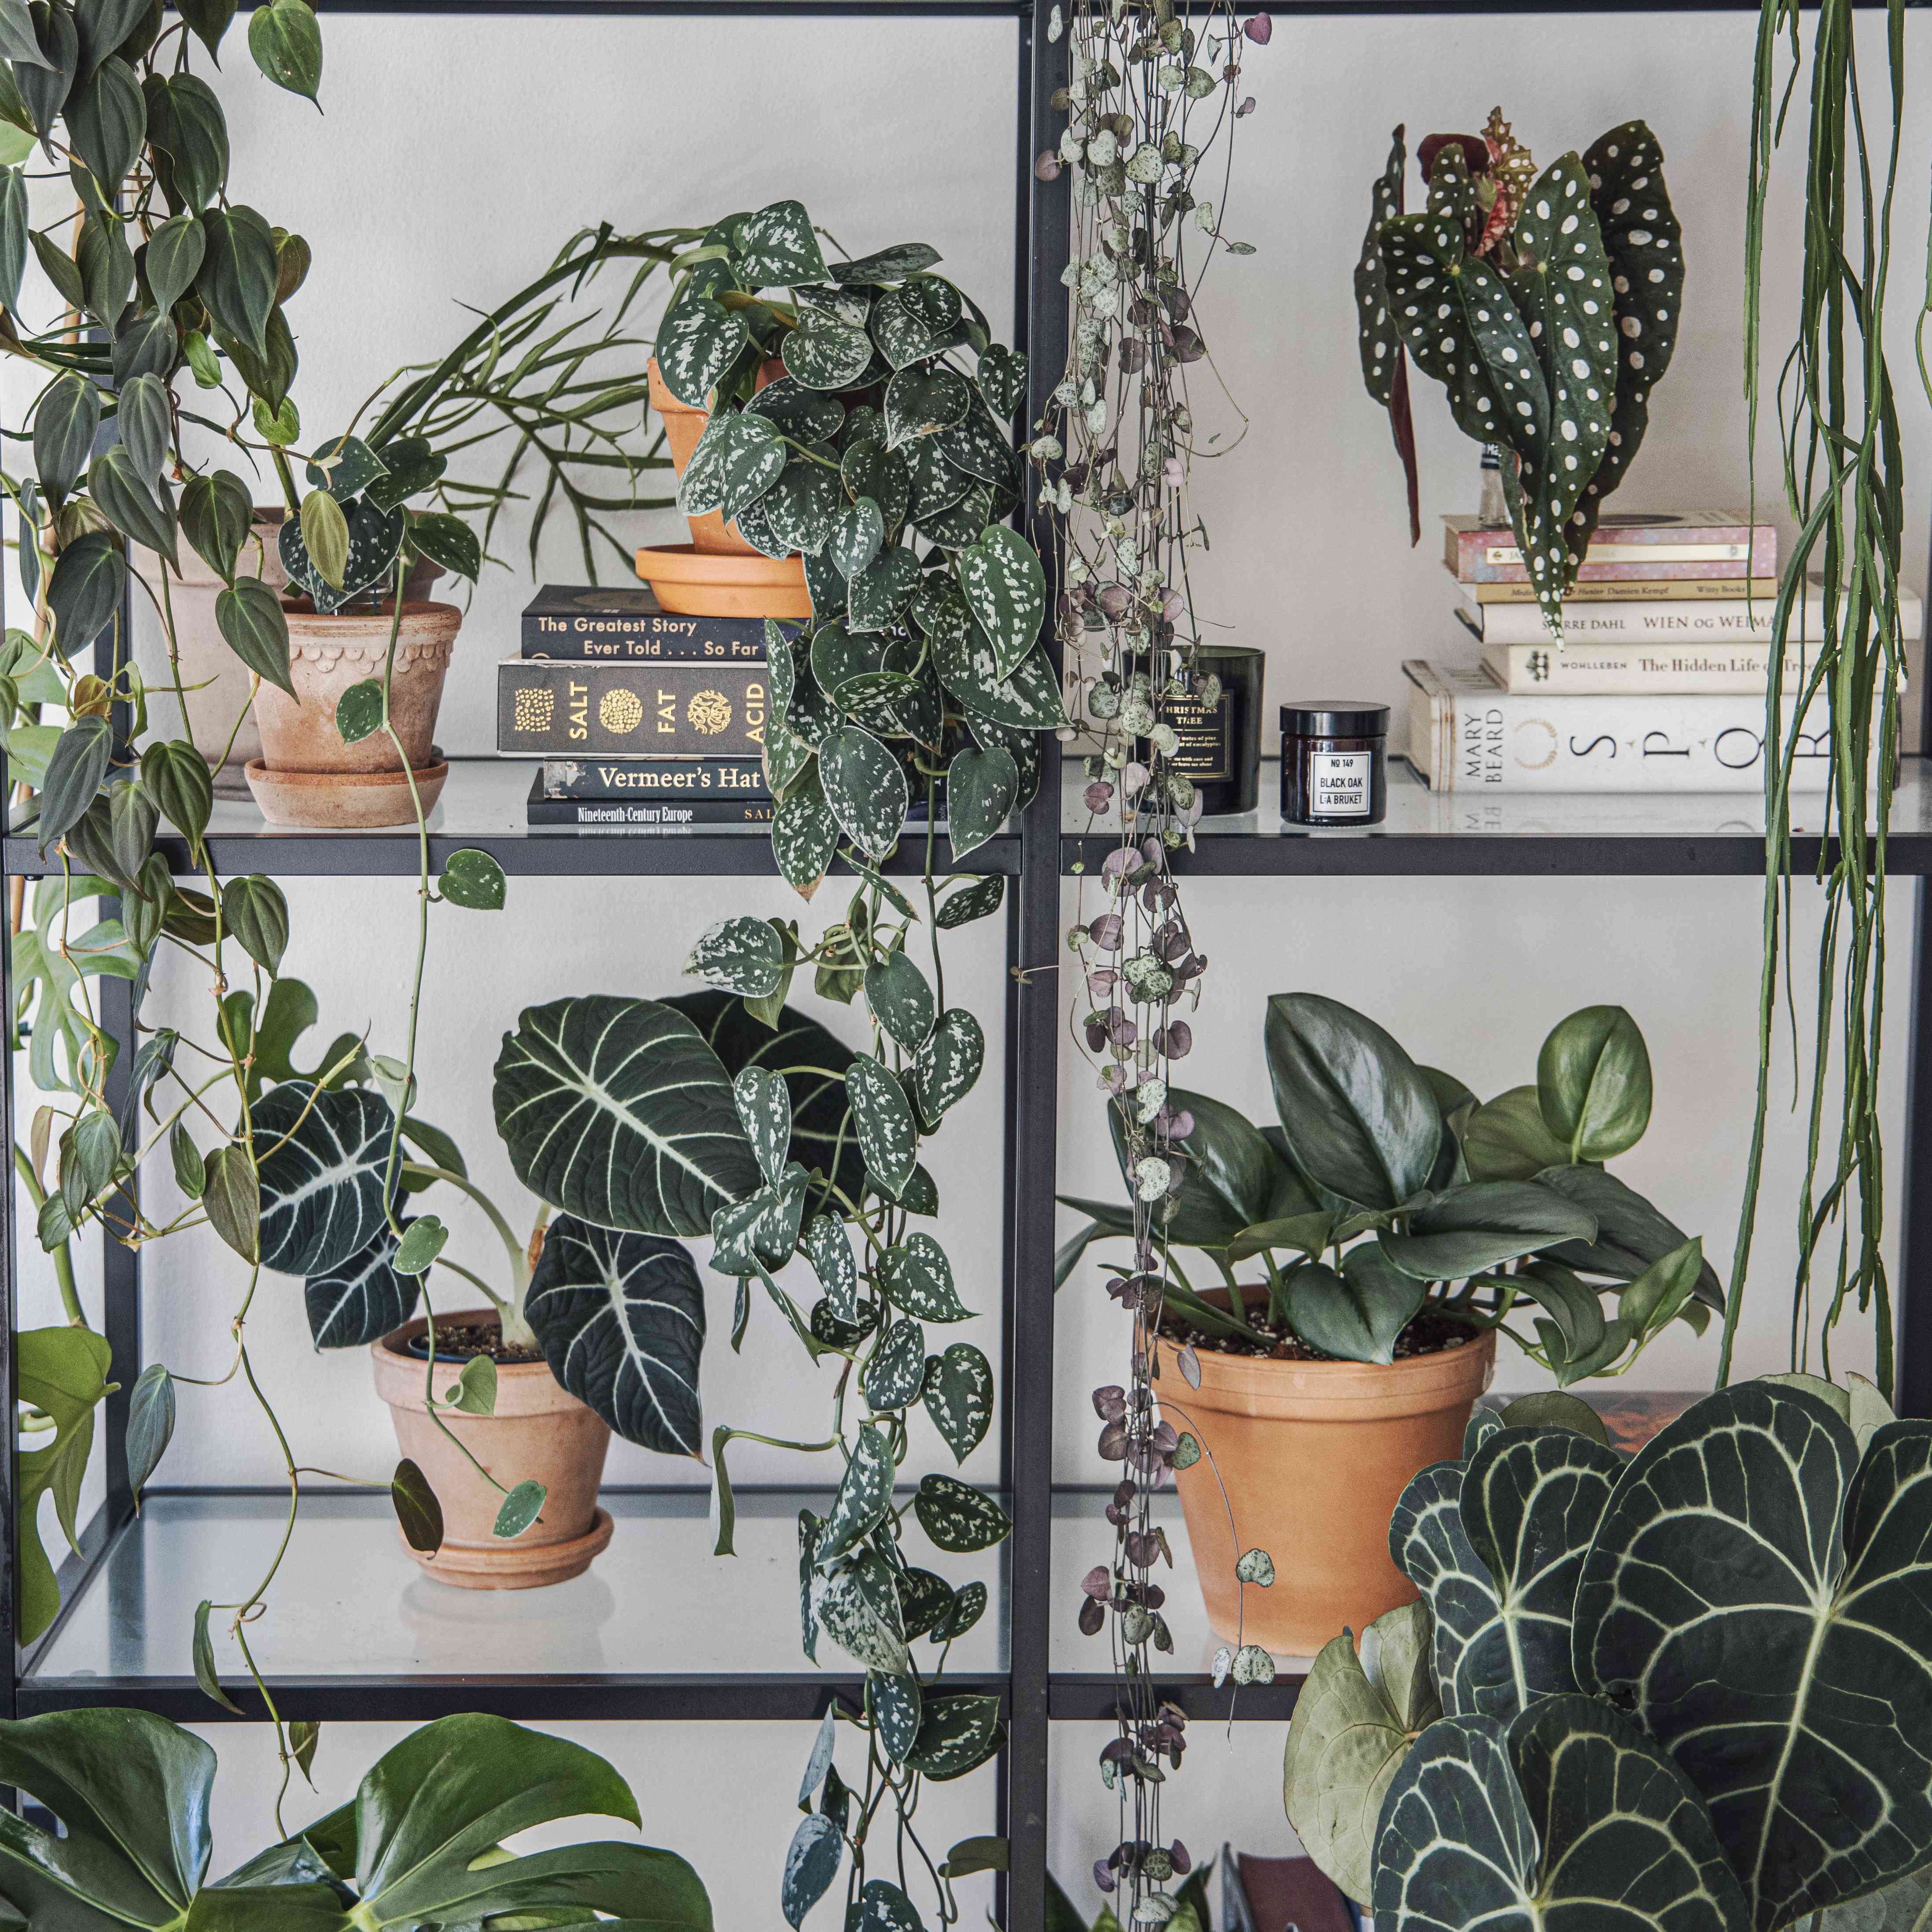 Gorgeous plant shelfie collection by Aina of @planterogplaneter